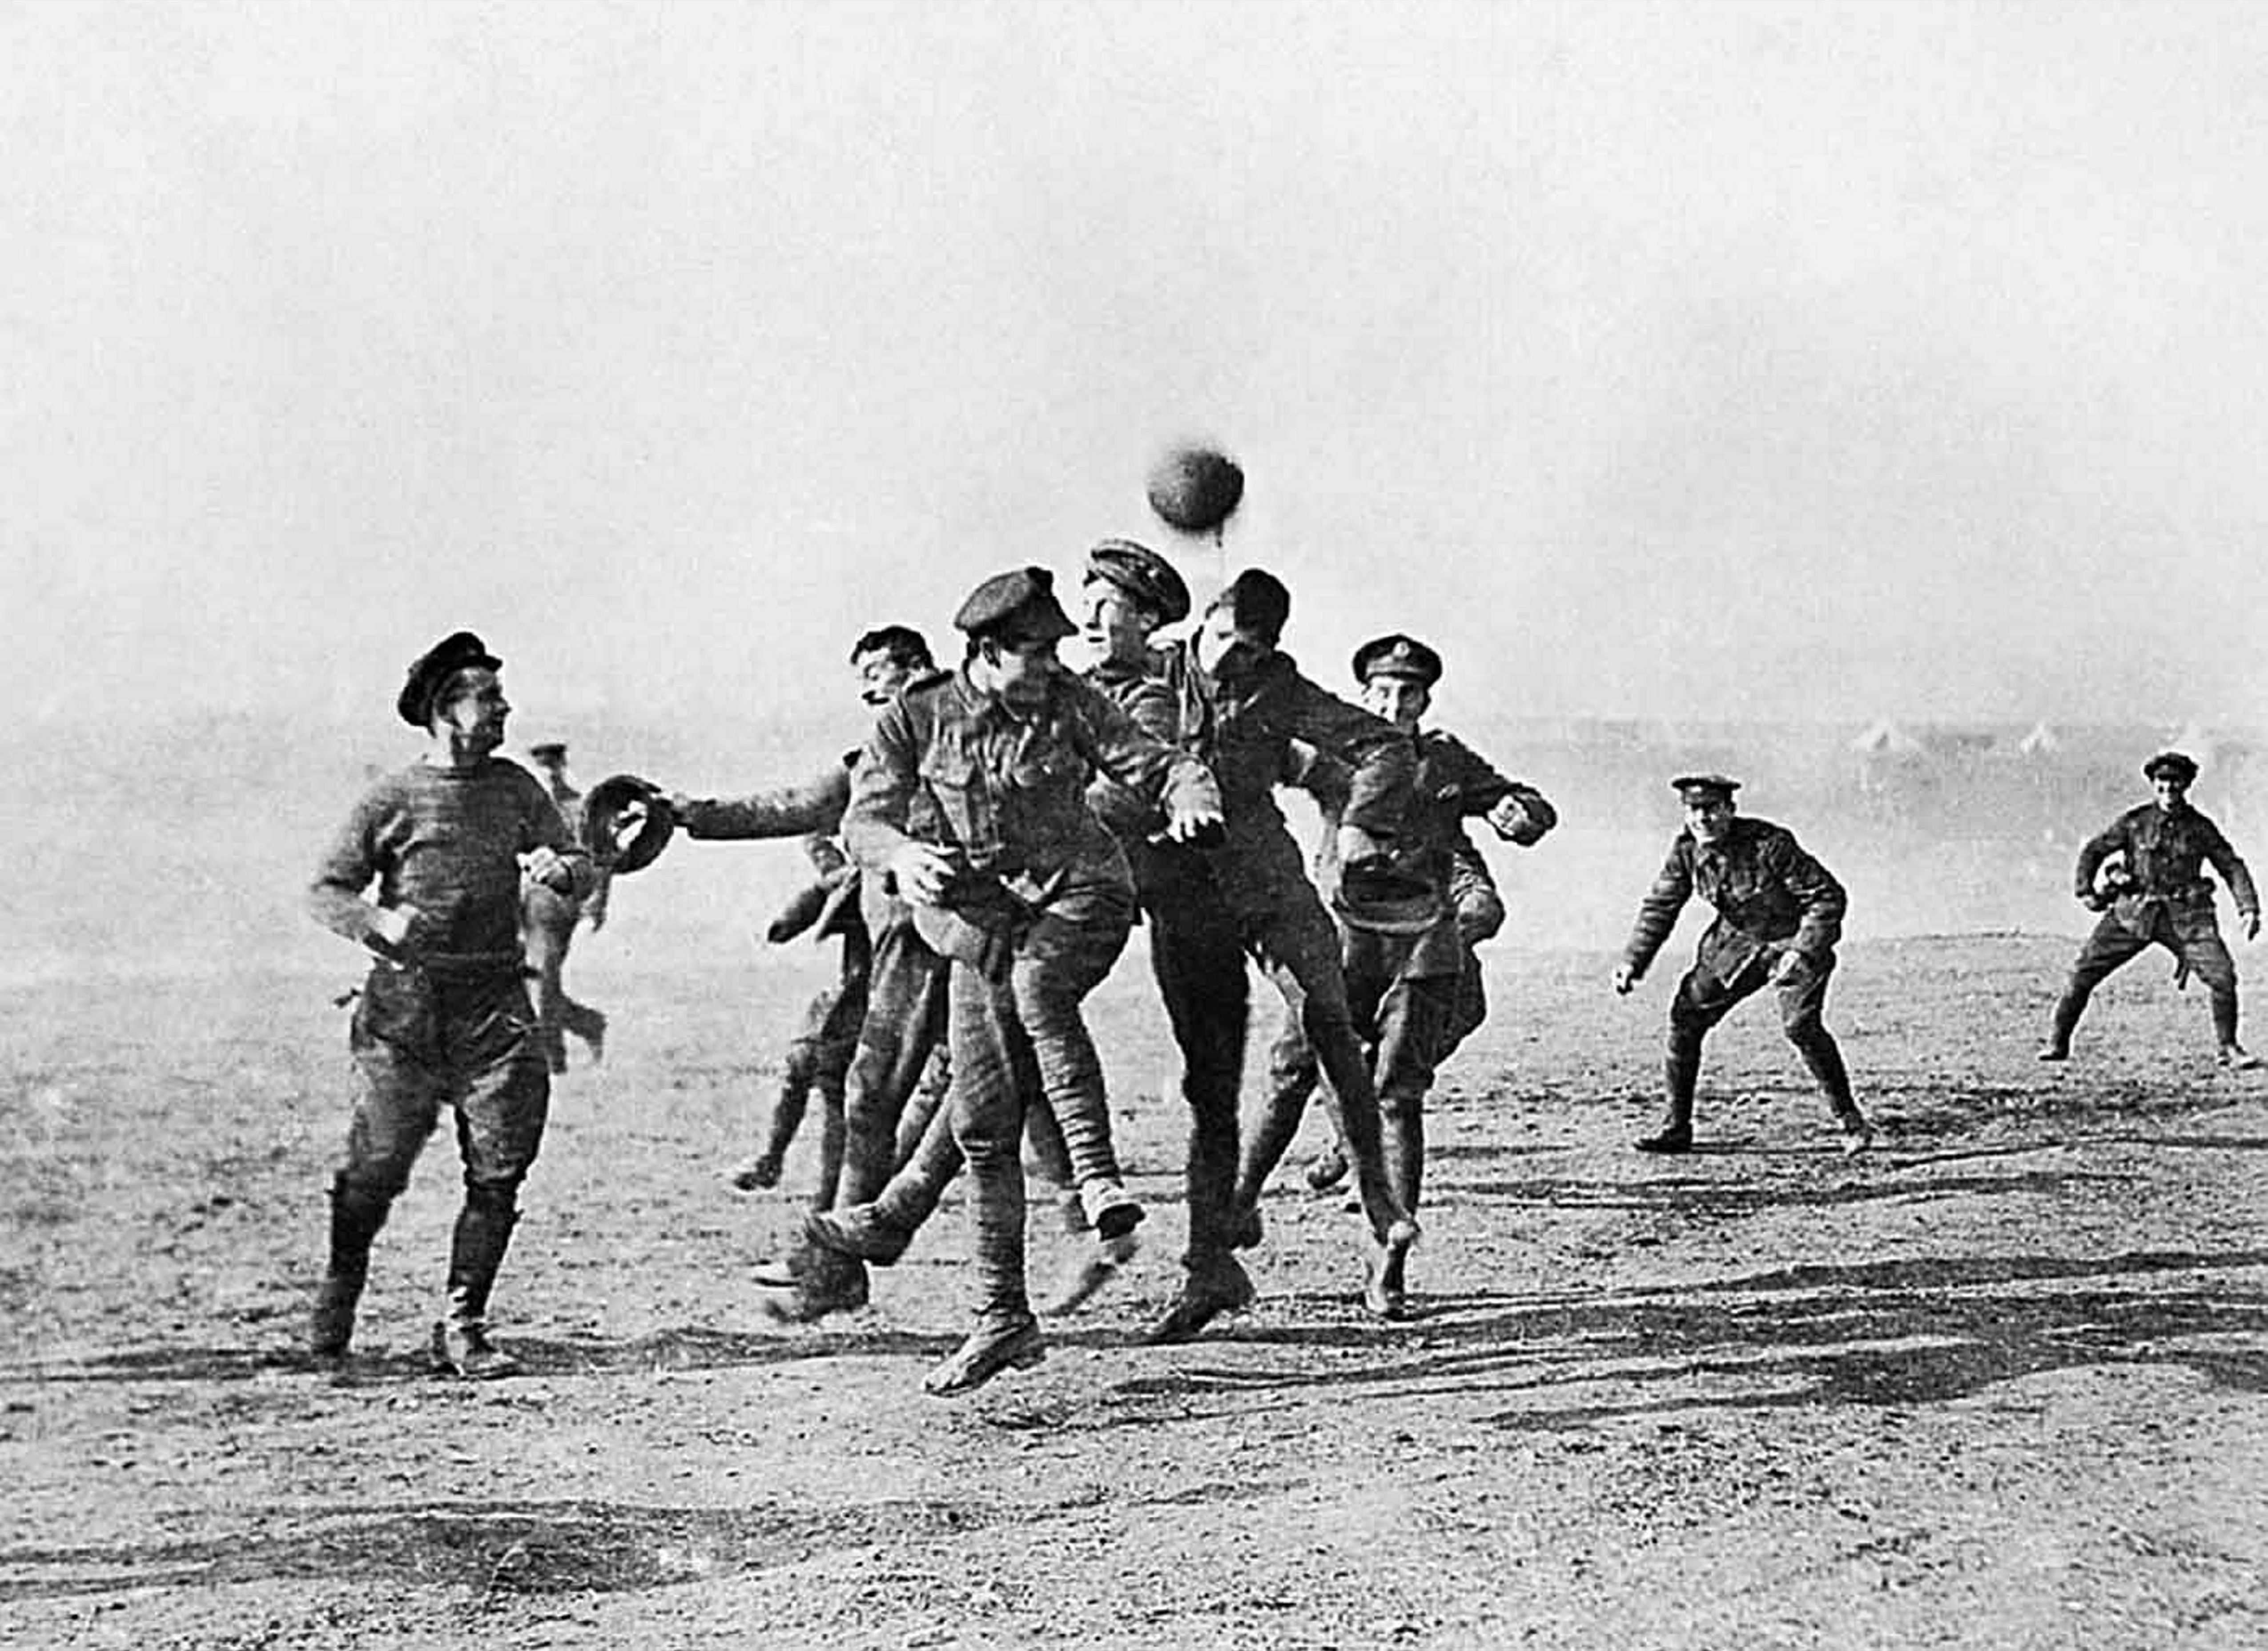 Soldiers play football in No-Man's Land during the Christmas Truce of